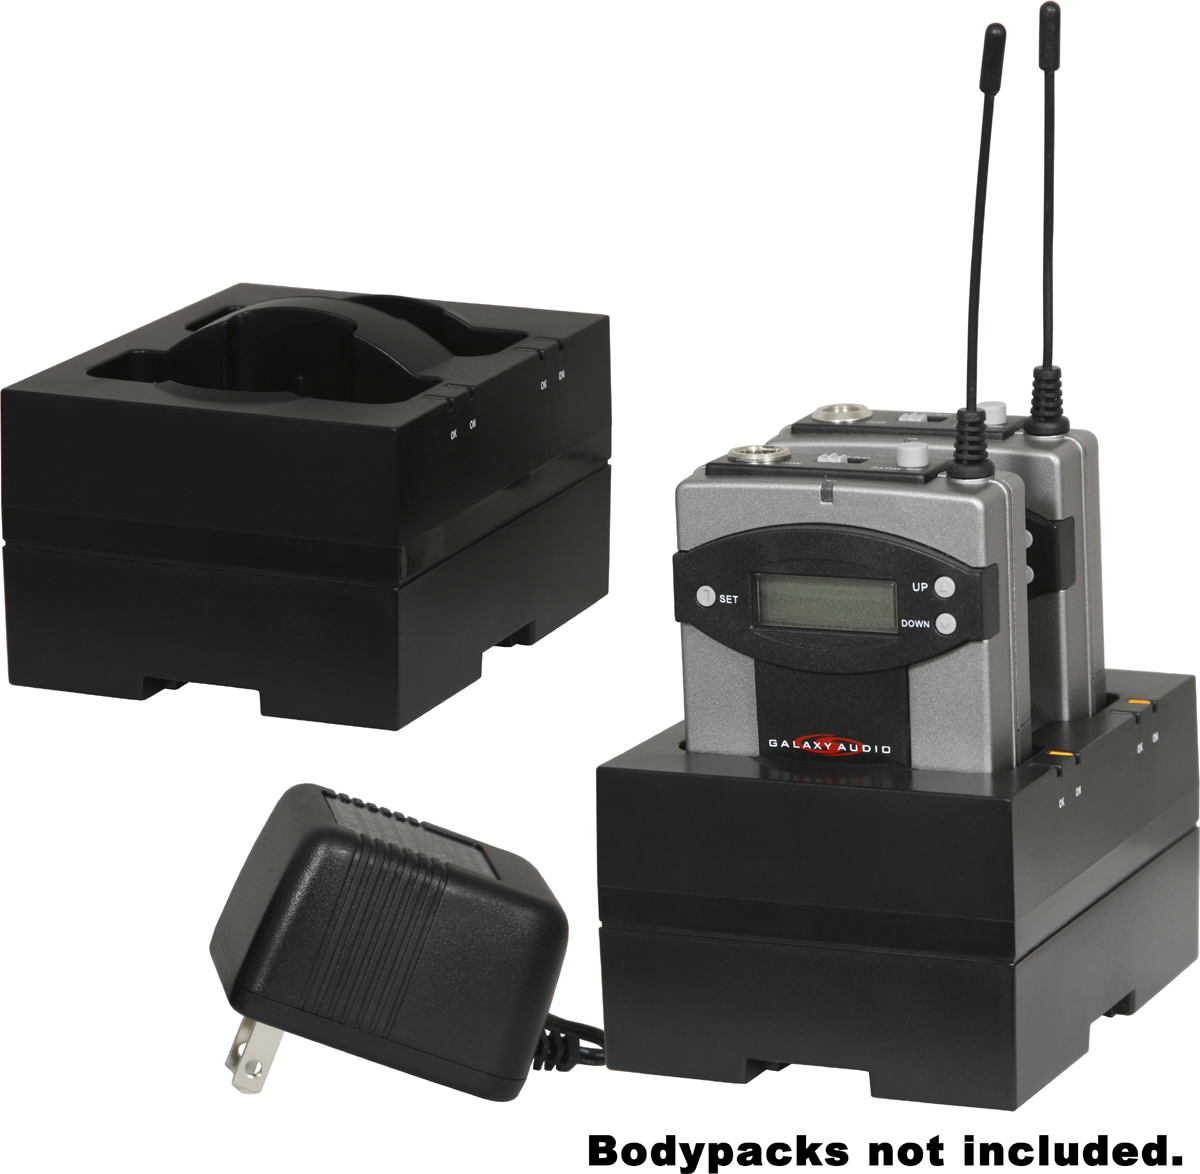 Galaxy Audio AS-DCTVMBP DC Charger for Traveler & AS-QUAD Bodypacks